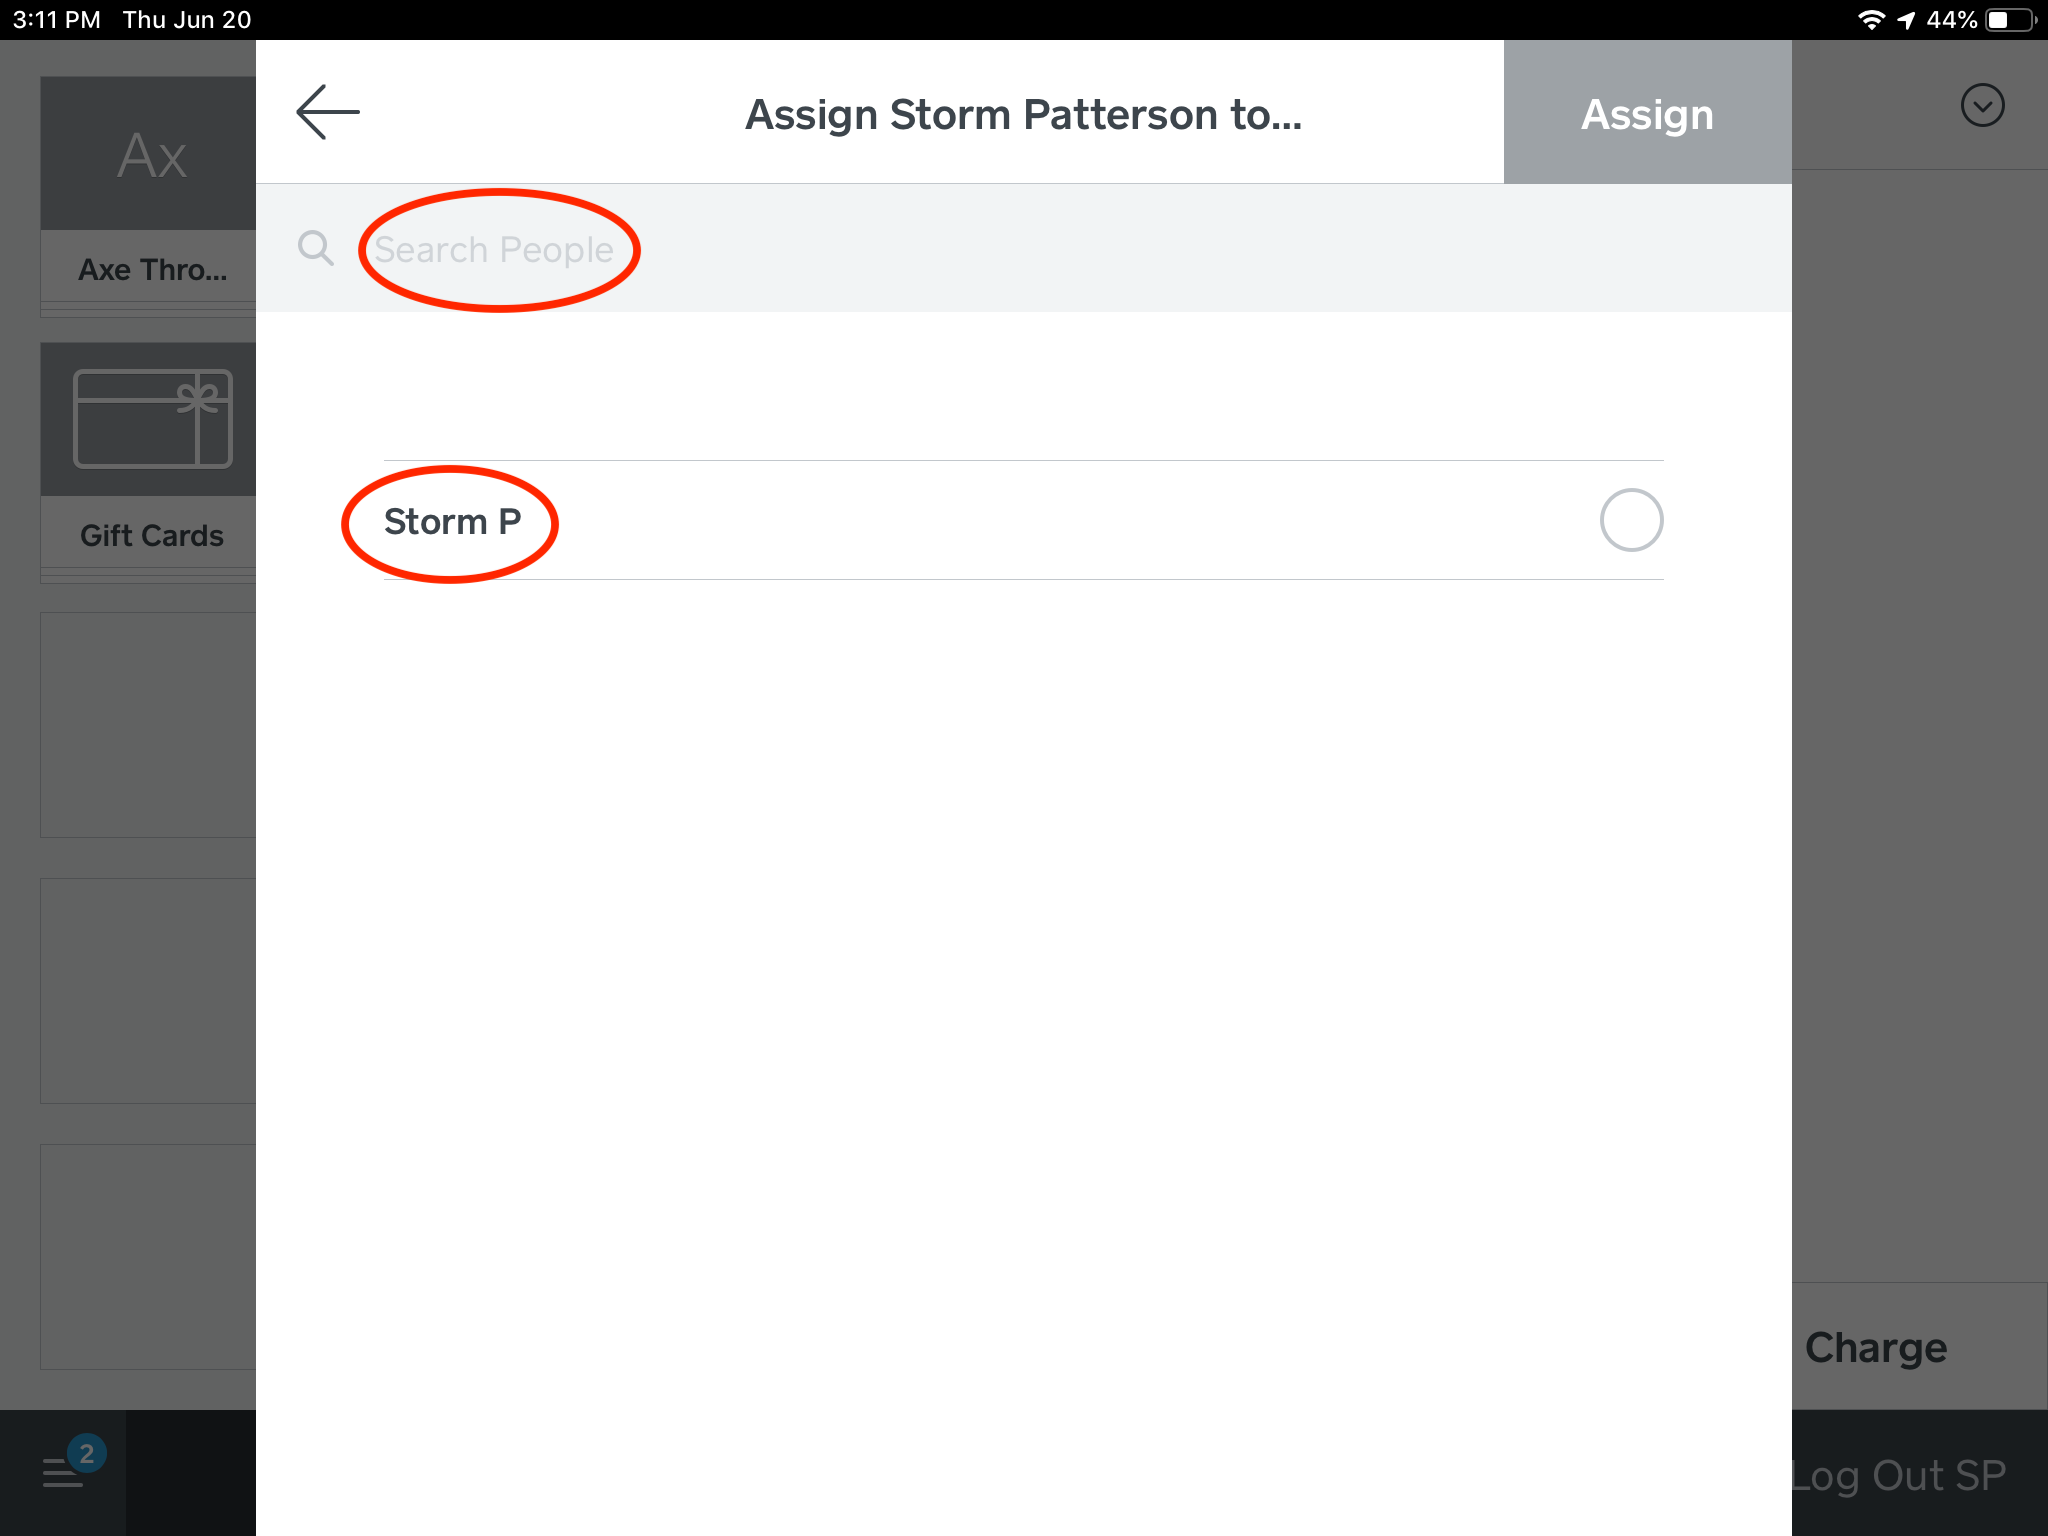 Step 4: If you would like to assign the selected ticket, you can search for the other guest's name that you would like to assign the ticket too.